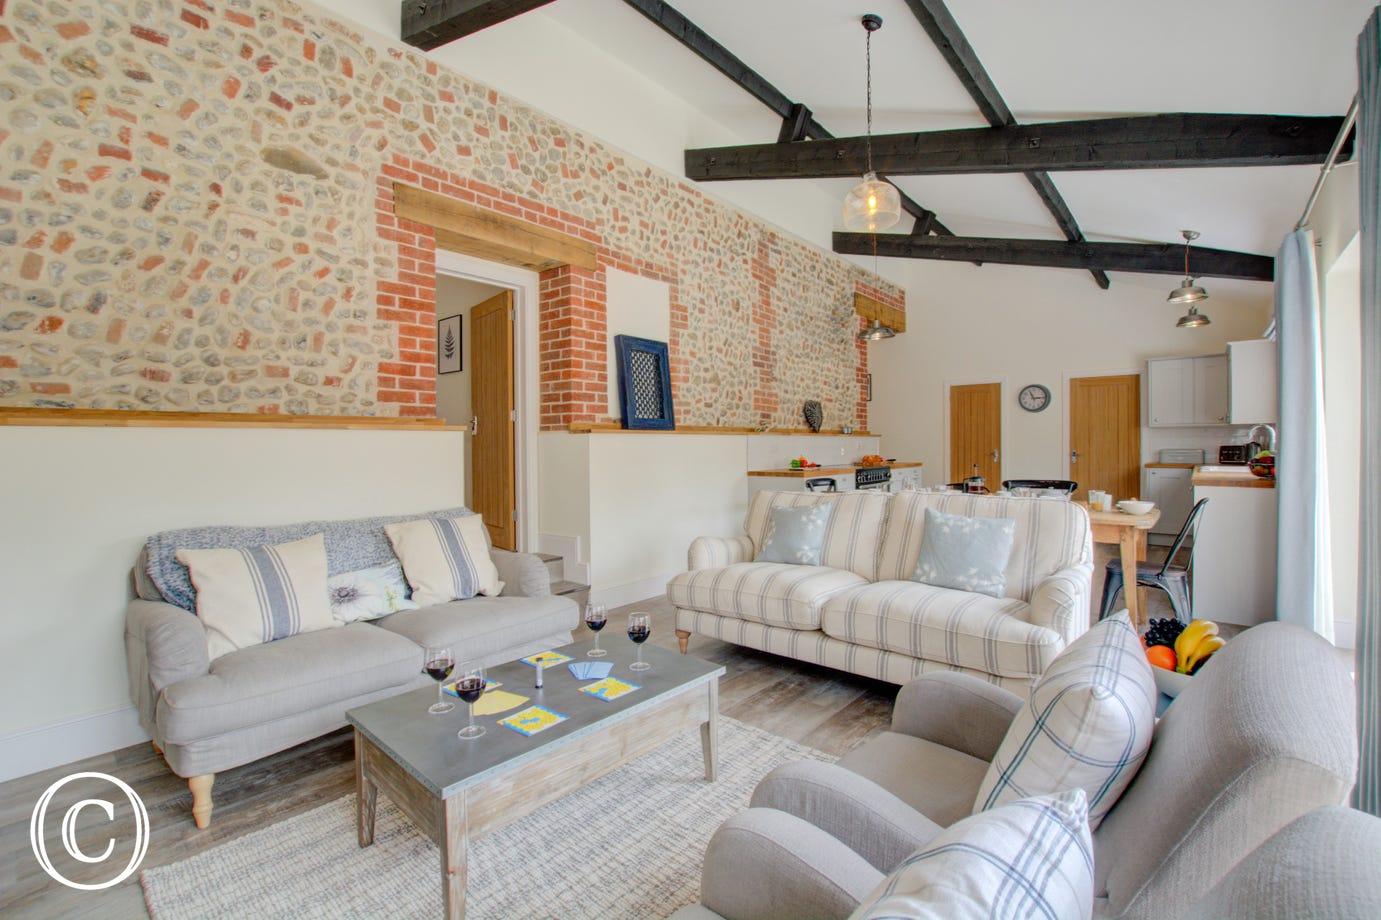 Open plan living room with comfortable seating, exposed brickwork & beams.